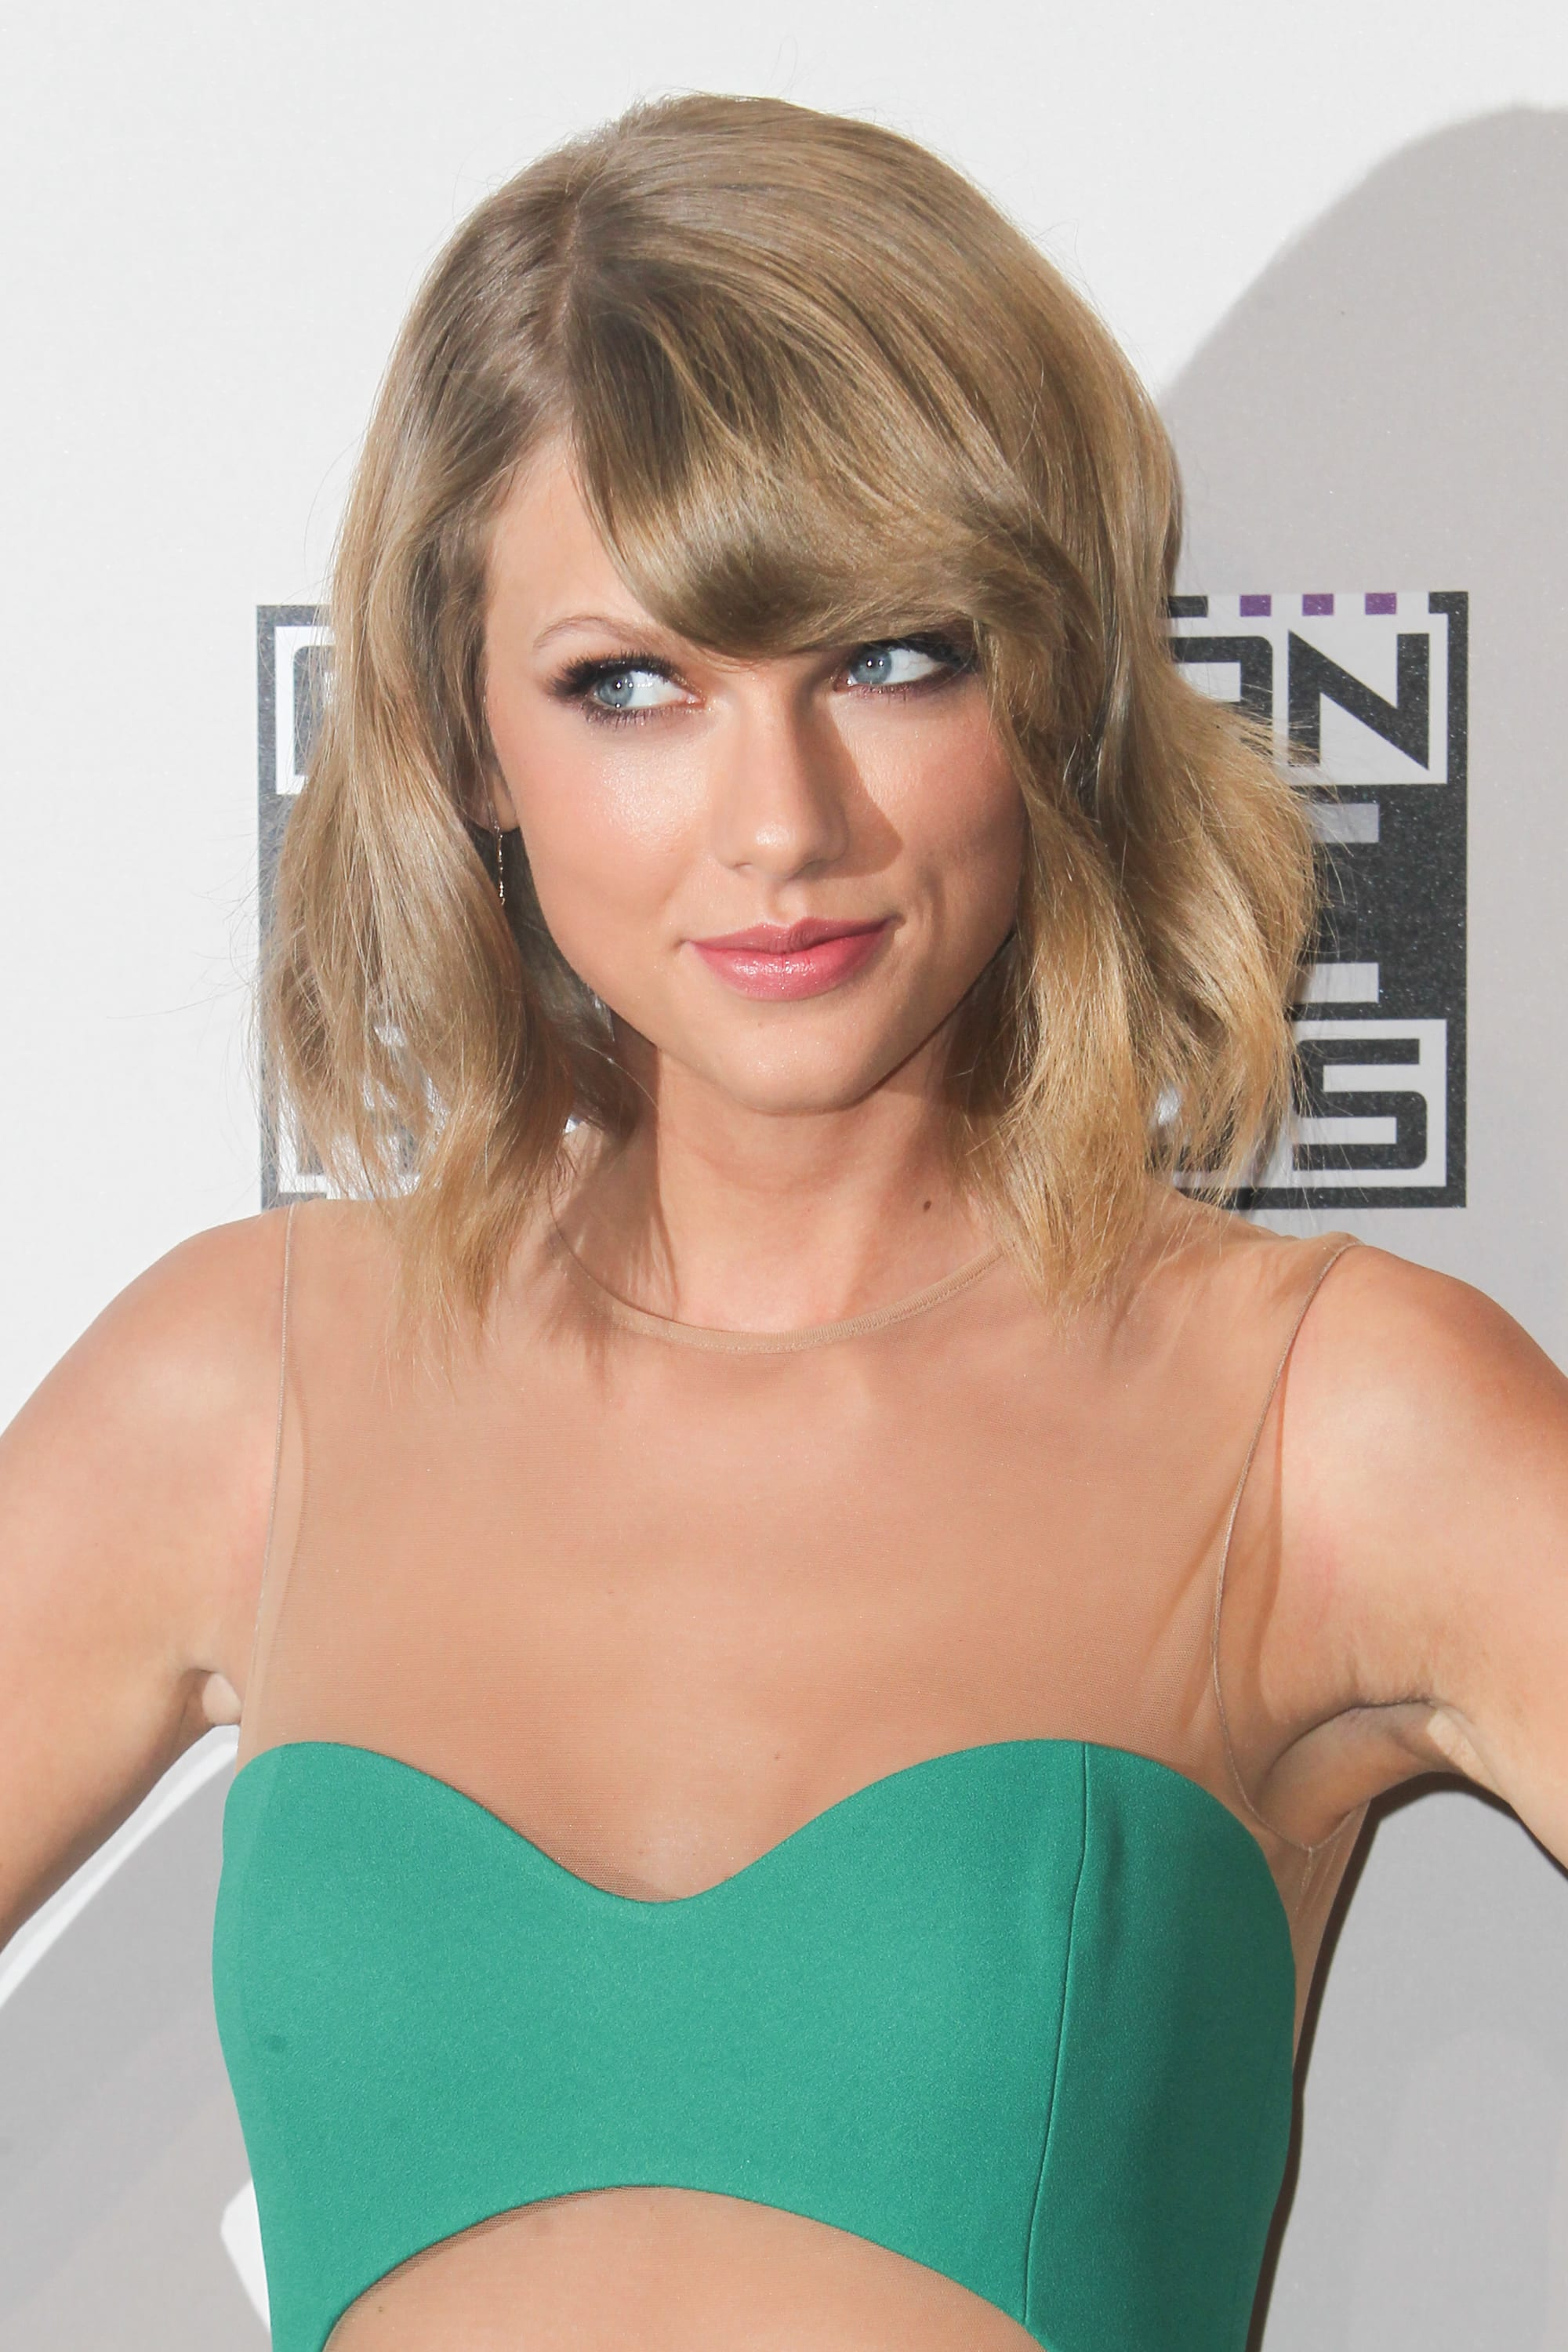 Taylor Swift Nude Photos To Be Released By Hackers The Hollywood Gossip